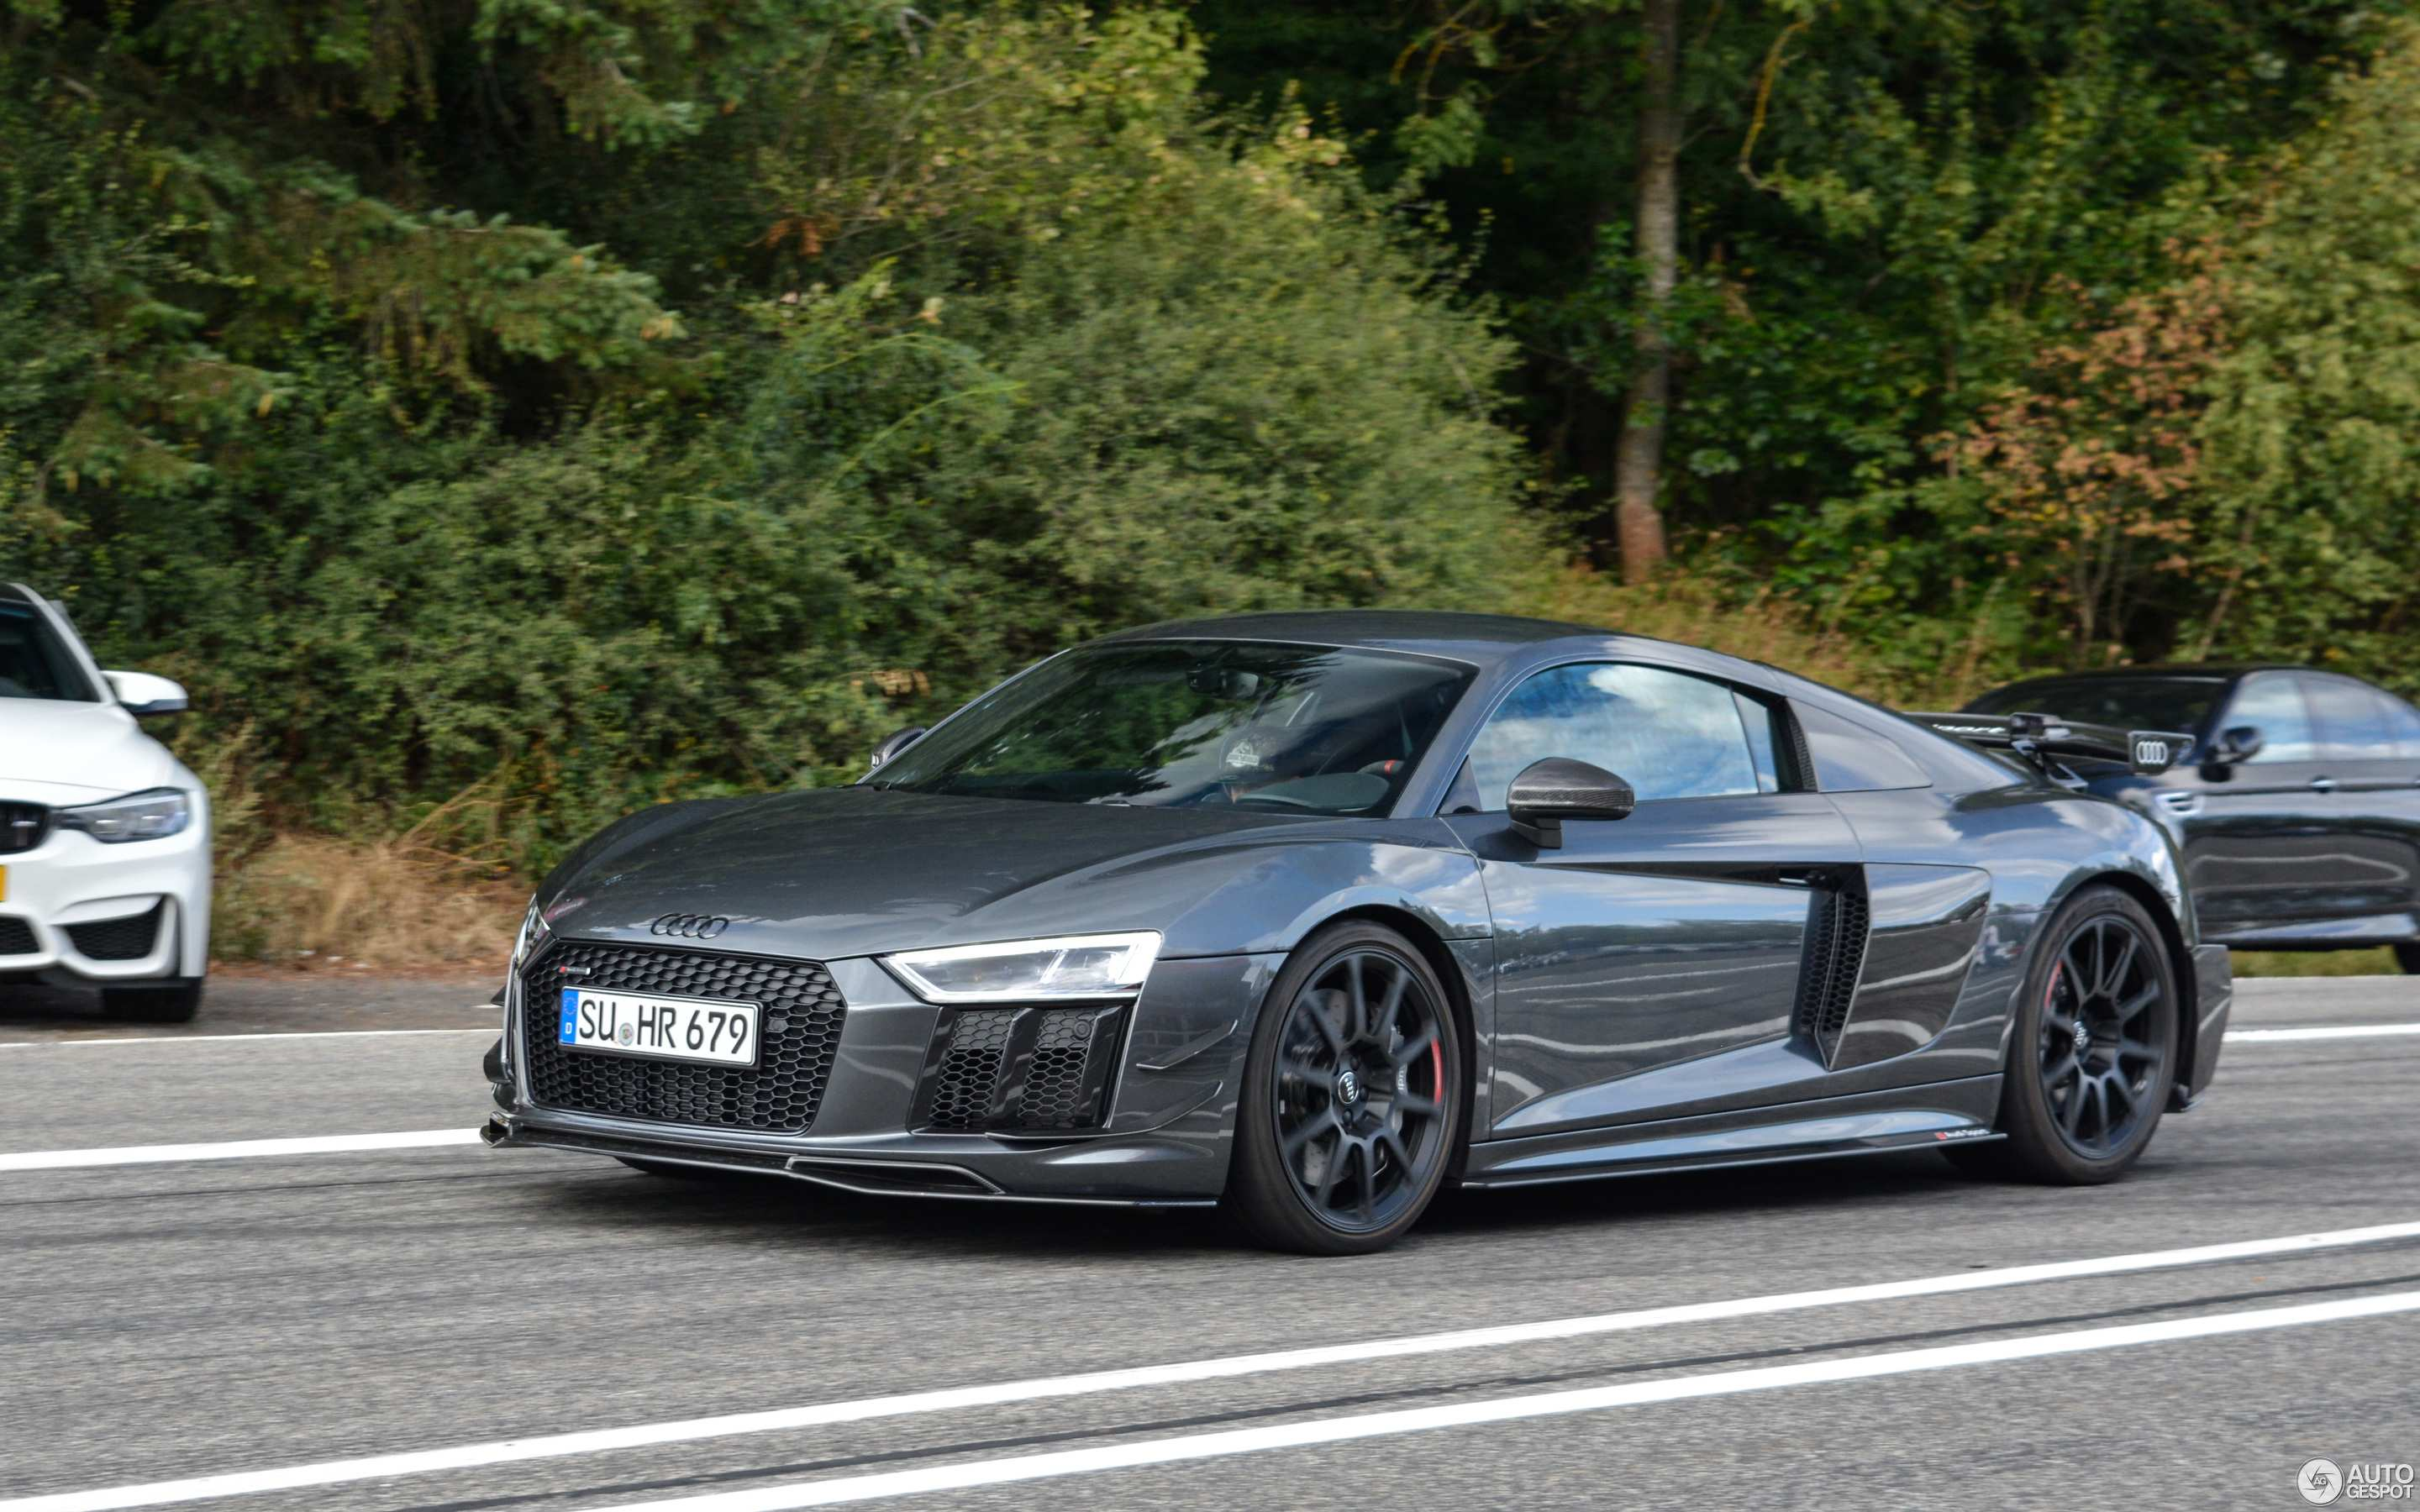 78 The Best 2020 Audi R8 Pricing